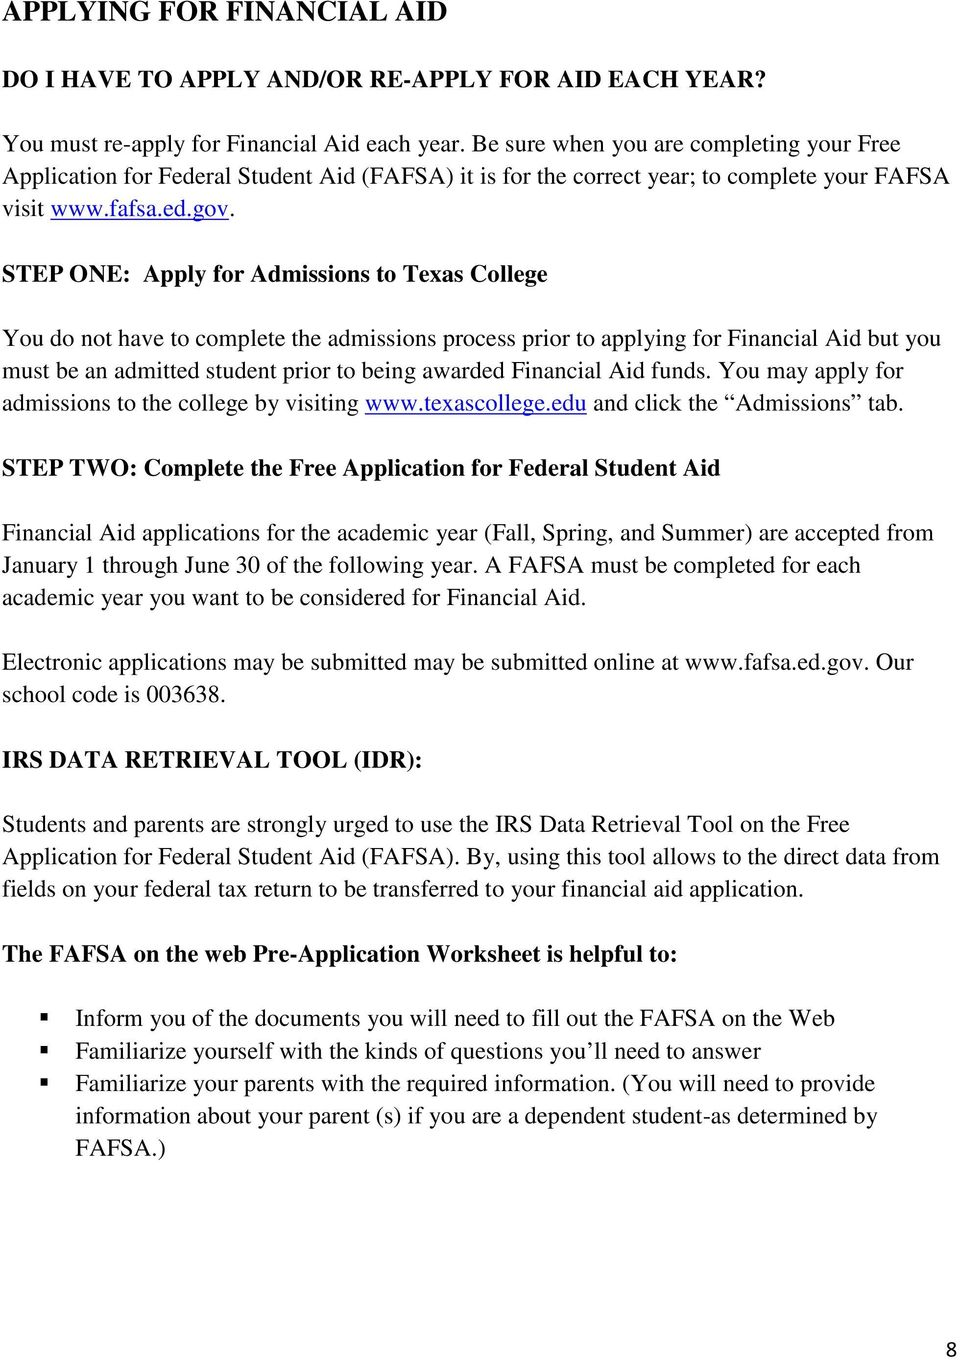 STEP ONE: Apply for Admissions to Texas College You do not have to complete the admissions process prior to applying for Financial Aid but you must be an admitted student prior to being awarded